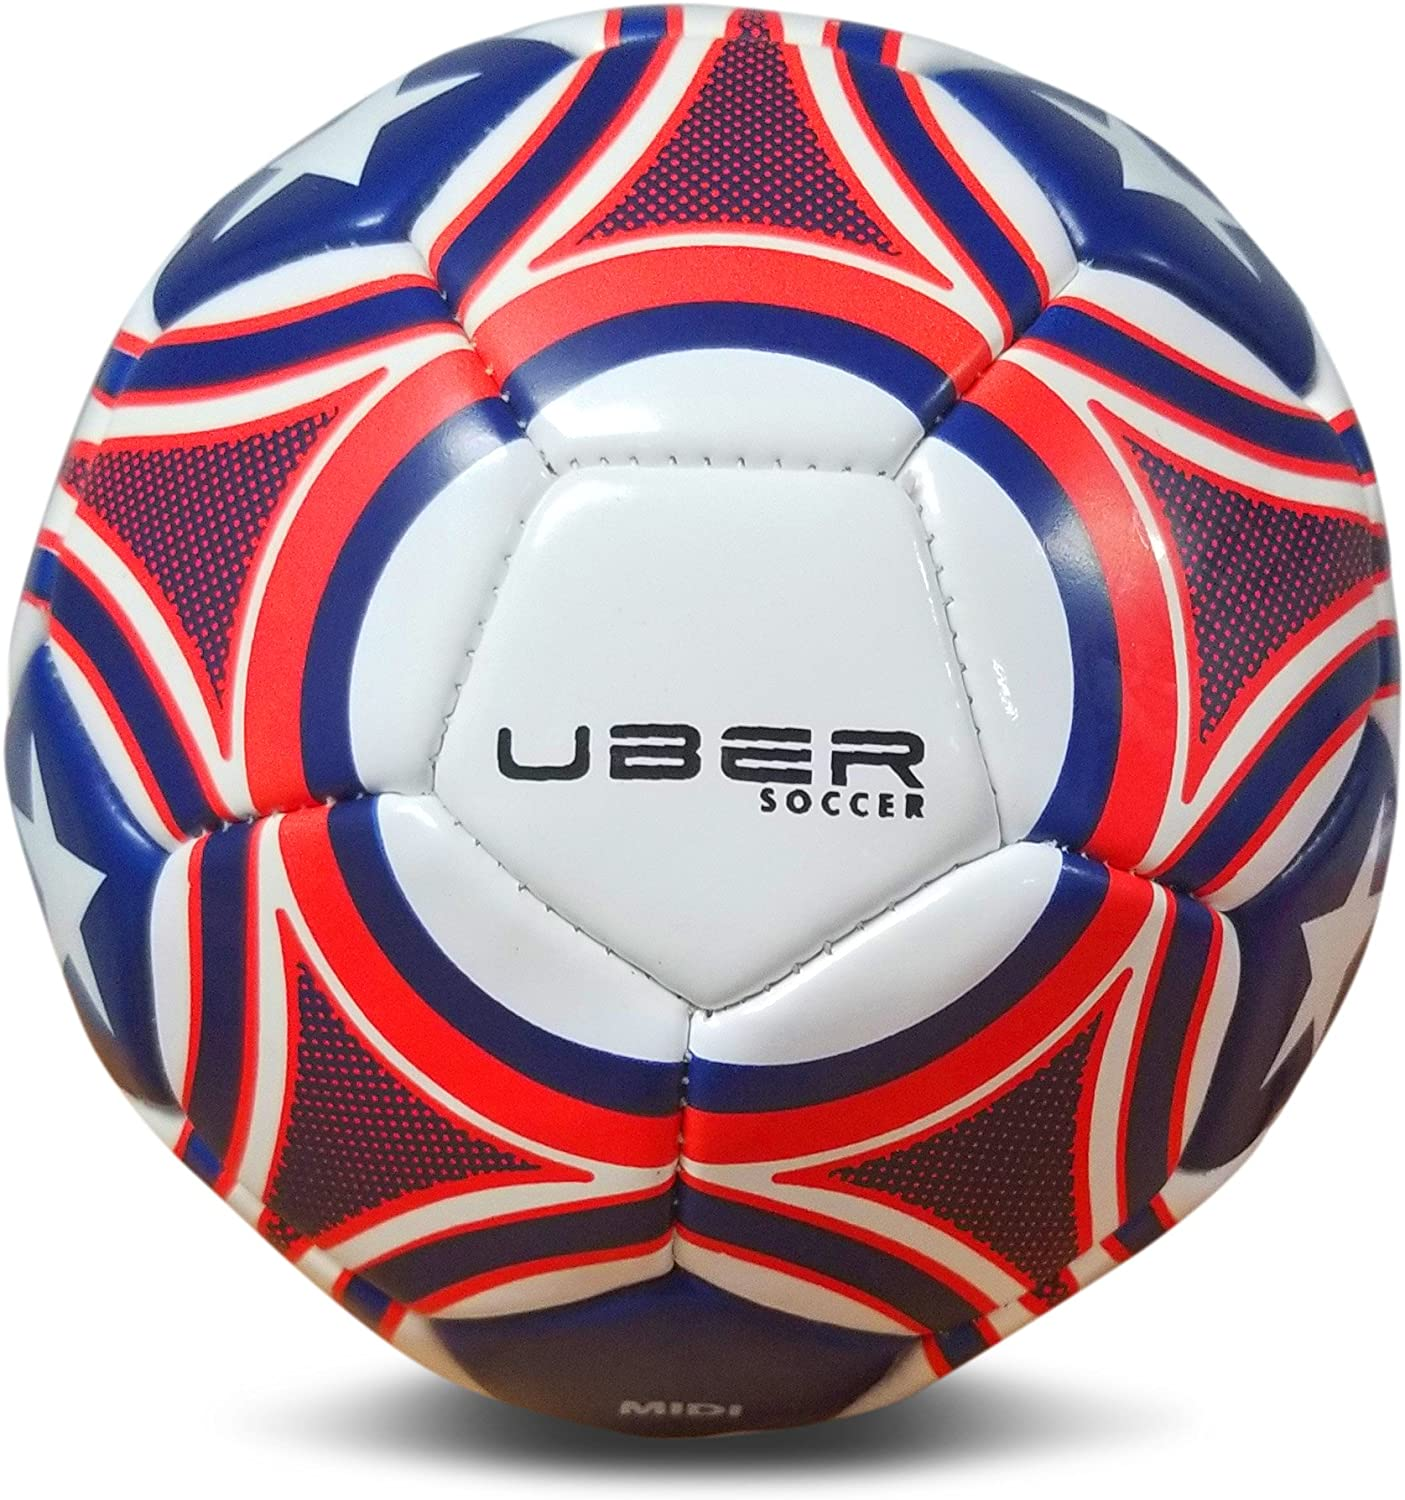 Uber Soccer Skills Midi Free shipping Classic anywhere in the nation - 0 Size Ball